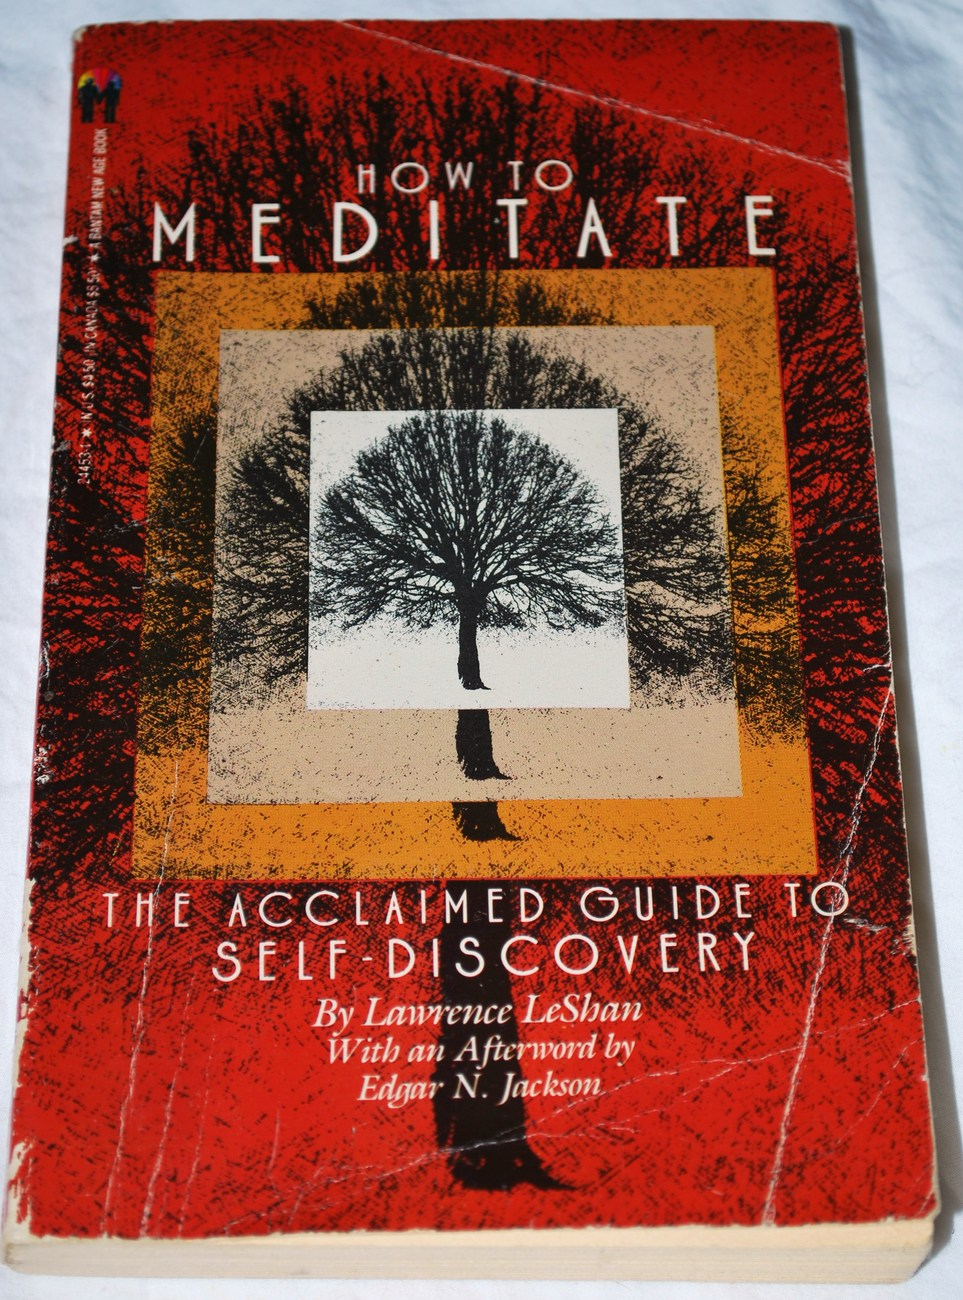 How_to_meditate_book_by_lawrence_leshan